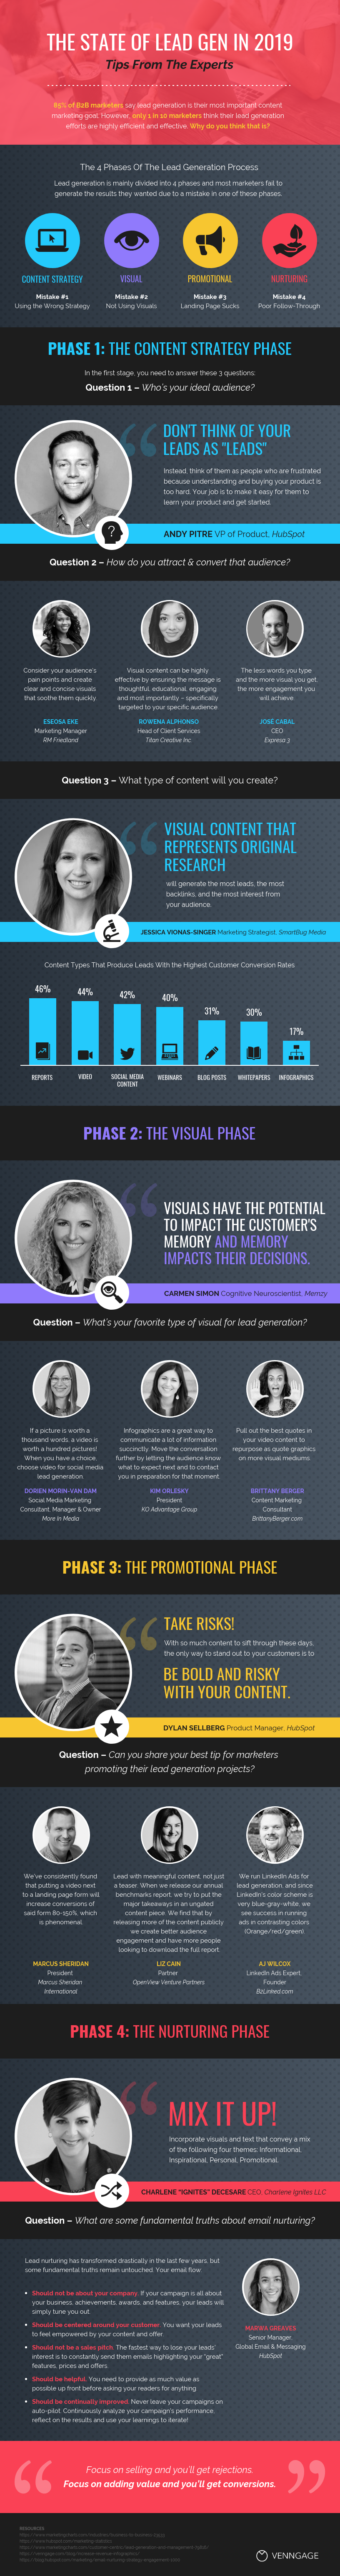 The State of Lead Generation 2019 infographic